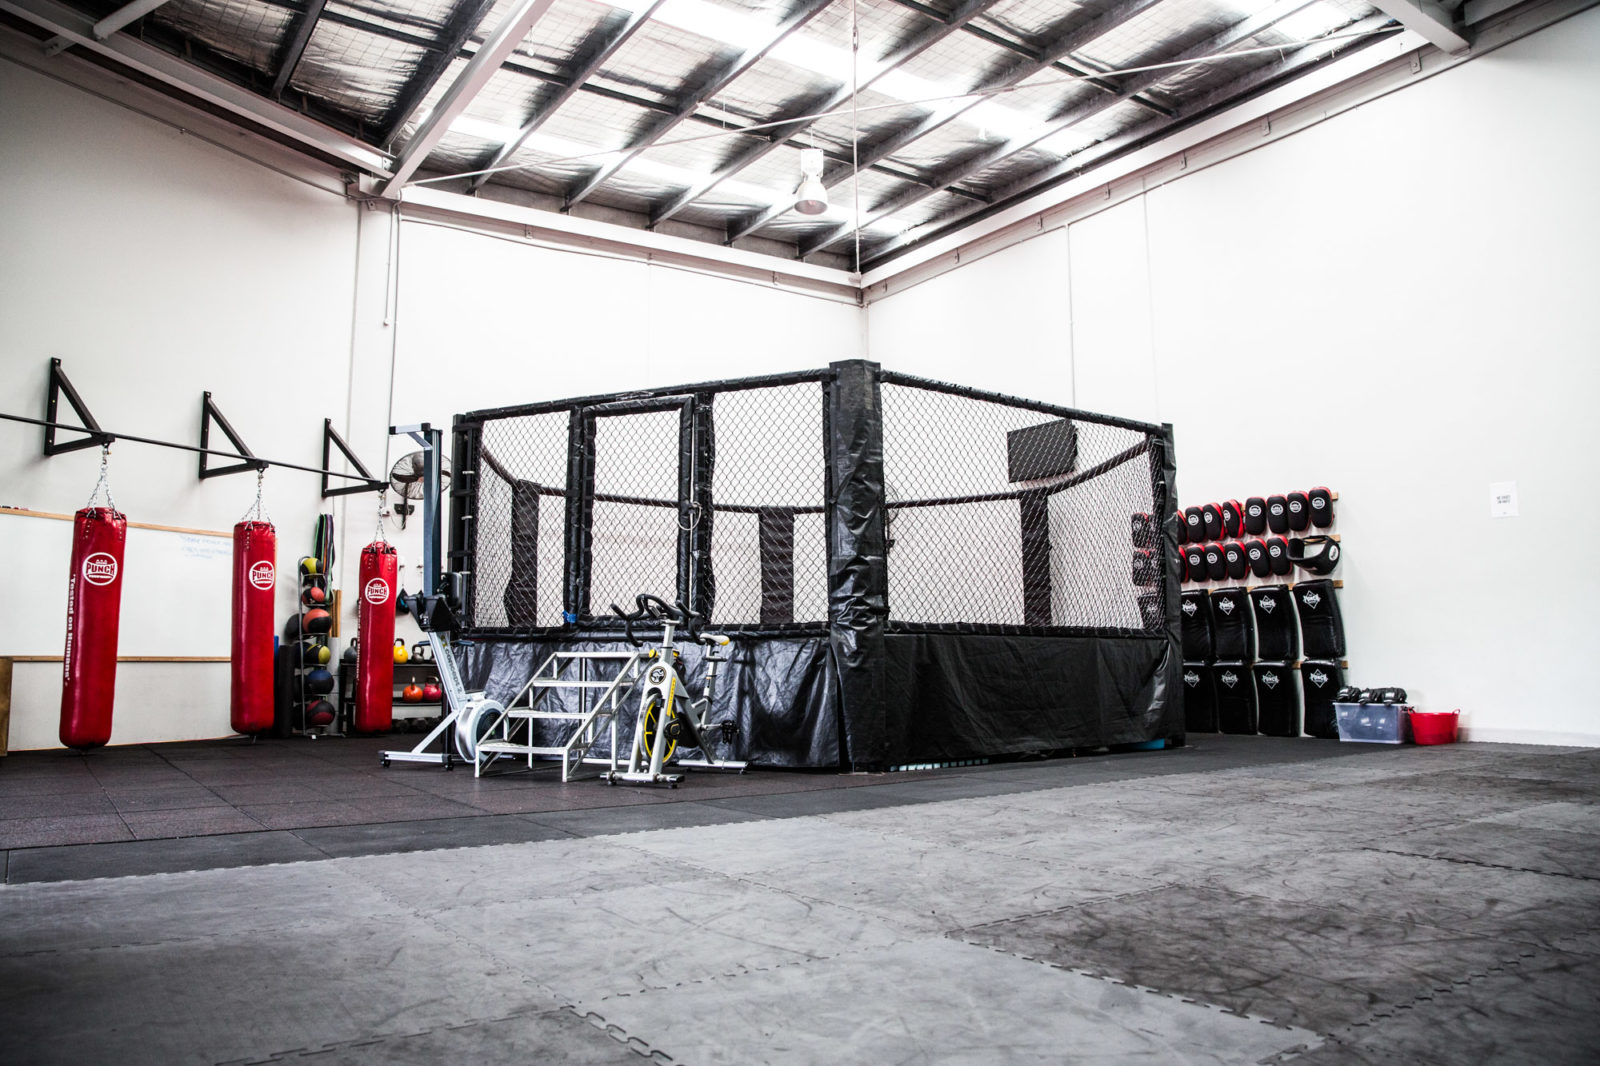 Boxing Brisbane City Fightcross Mma Albion Brisbane Mma Training Gym Fight